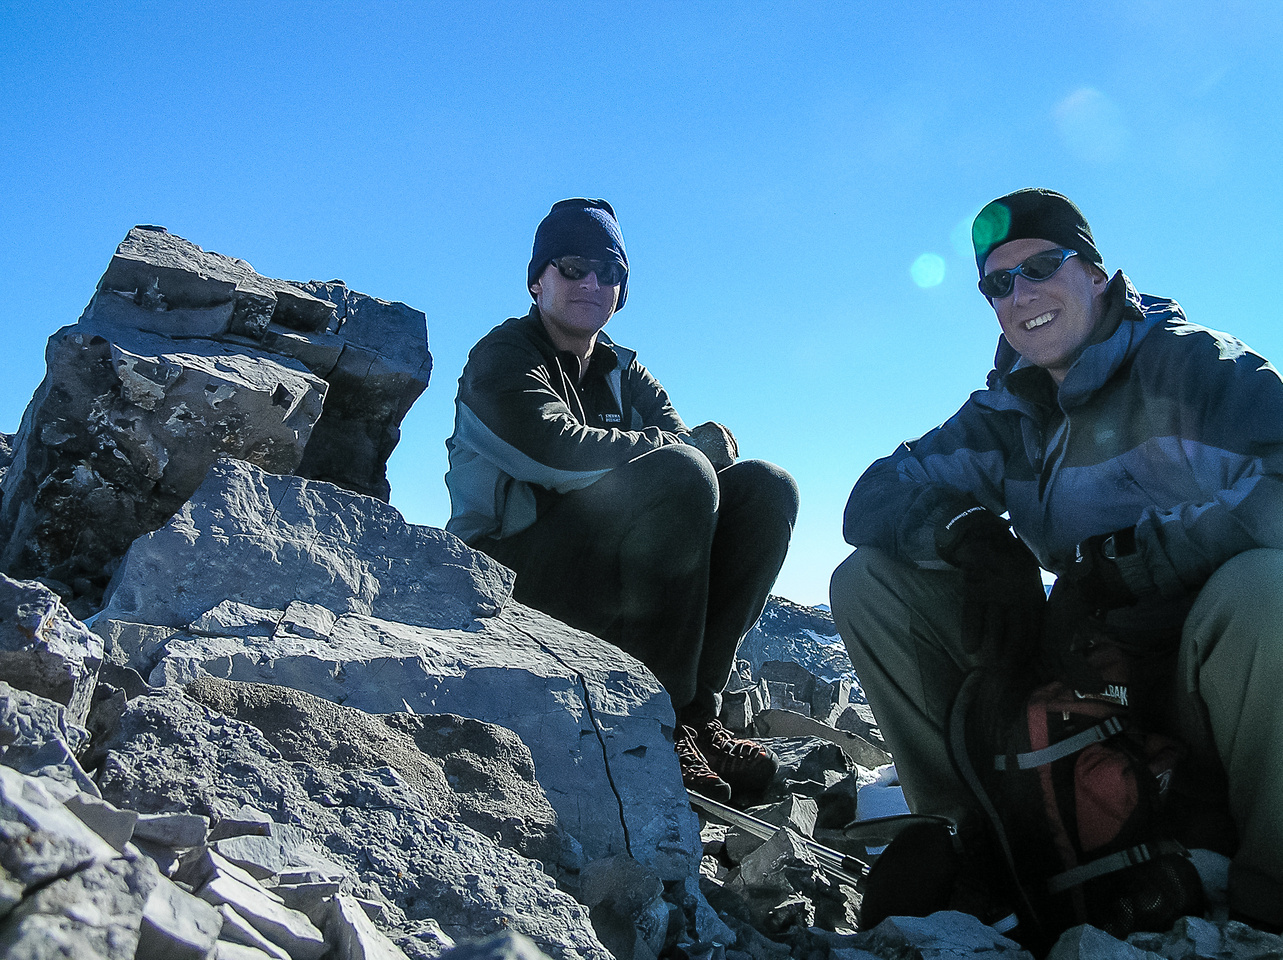 Dave and Vern on the summit of Gusty Peak.